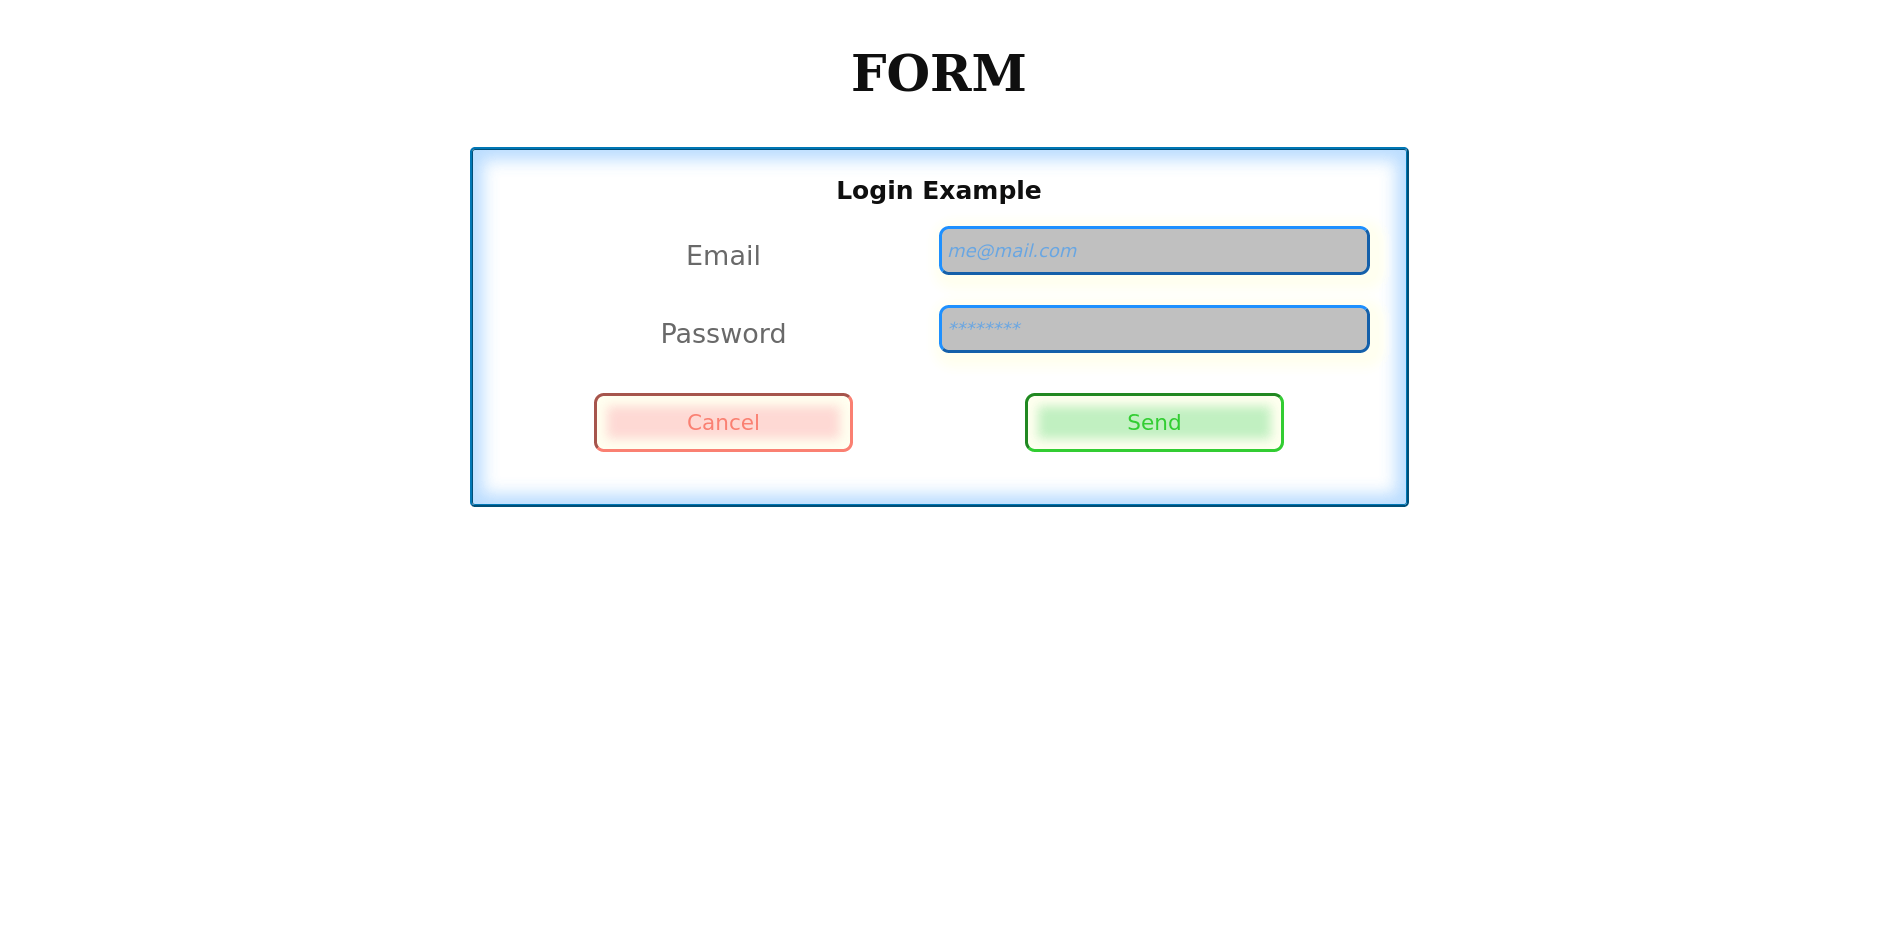 The Form example